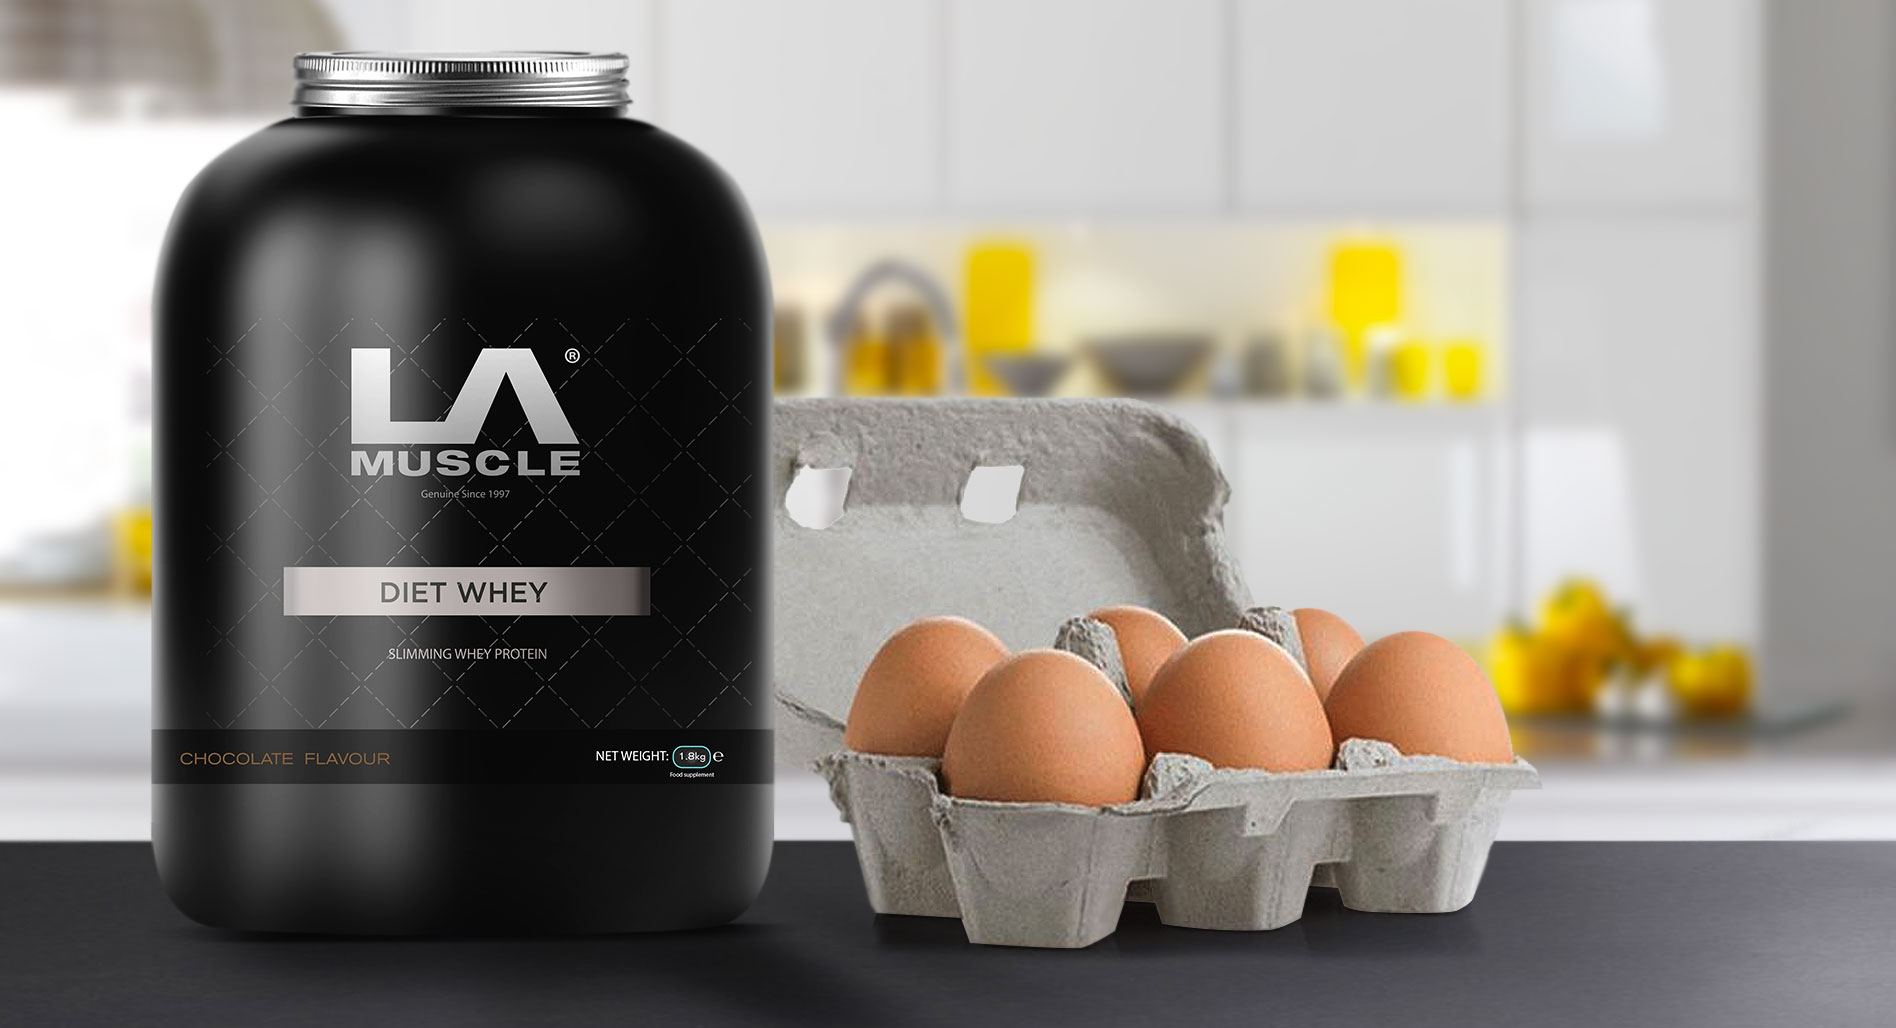 Diet Whey has more protein than 6 eggs